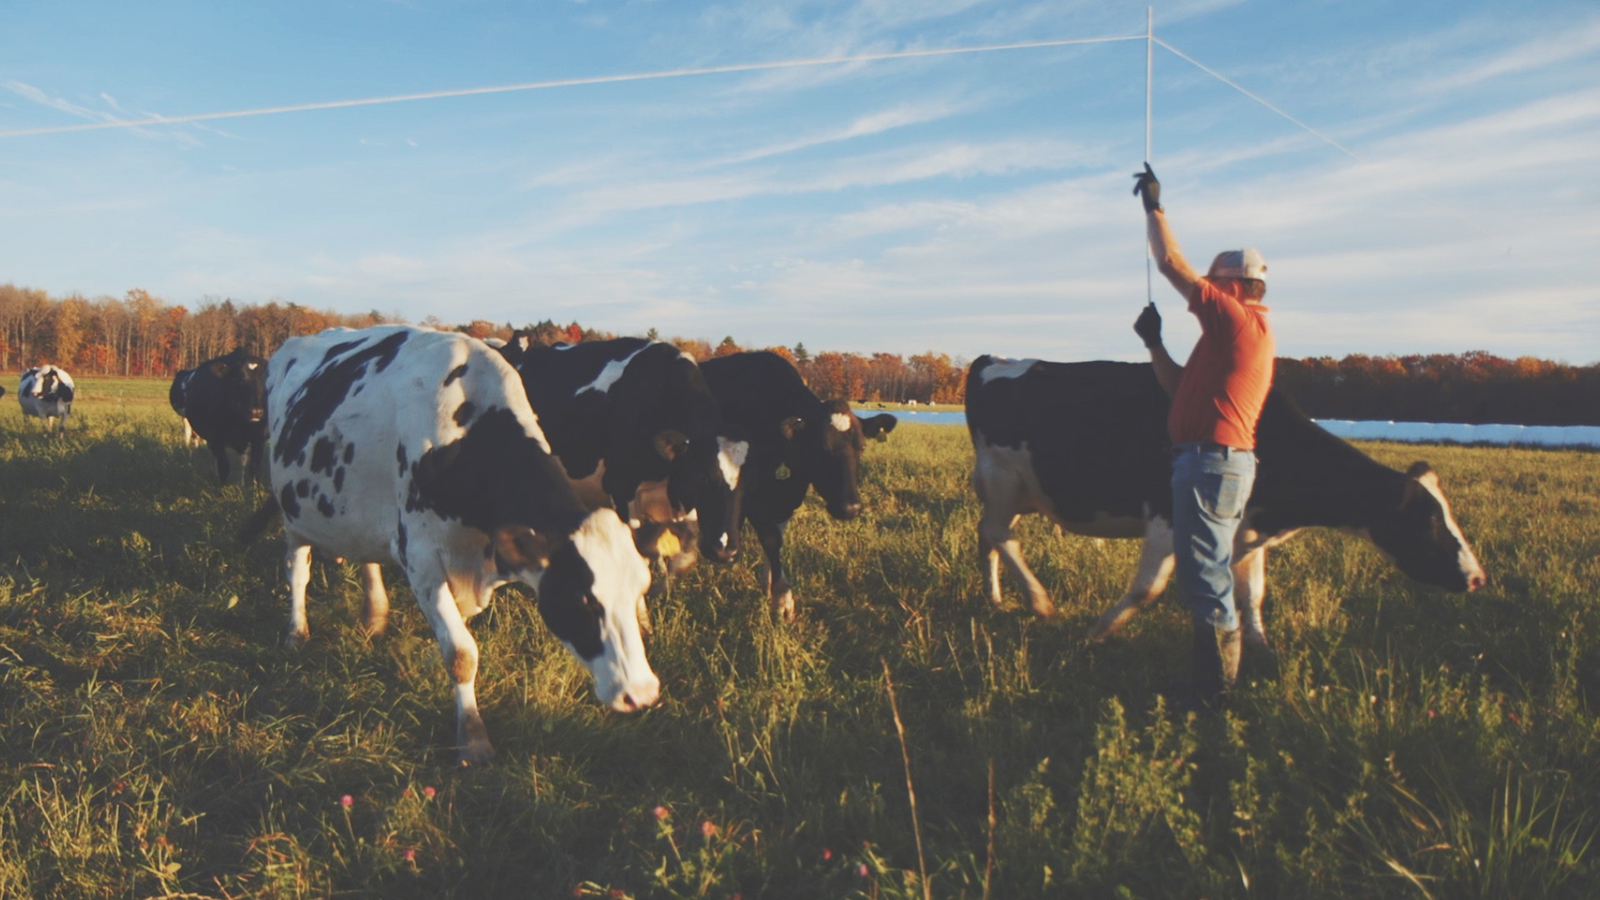 Organic Valley farmer, Kevin Mahalko, lifts fencing for cows to graze on pasture.